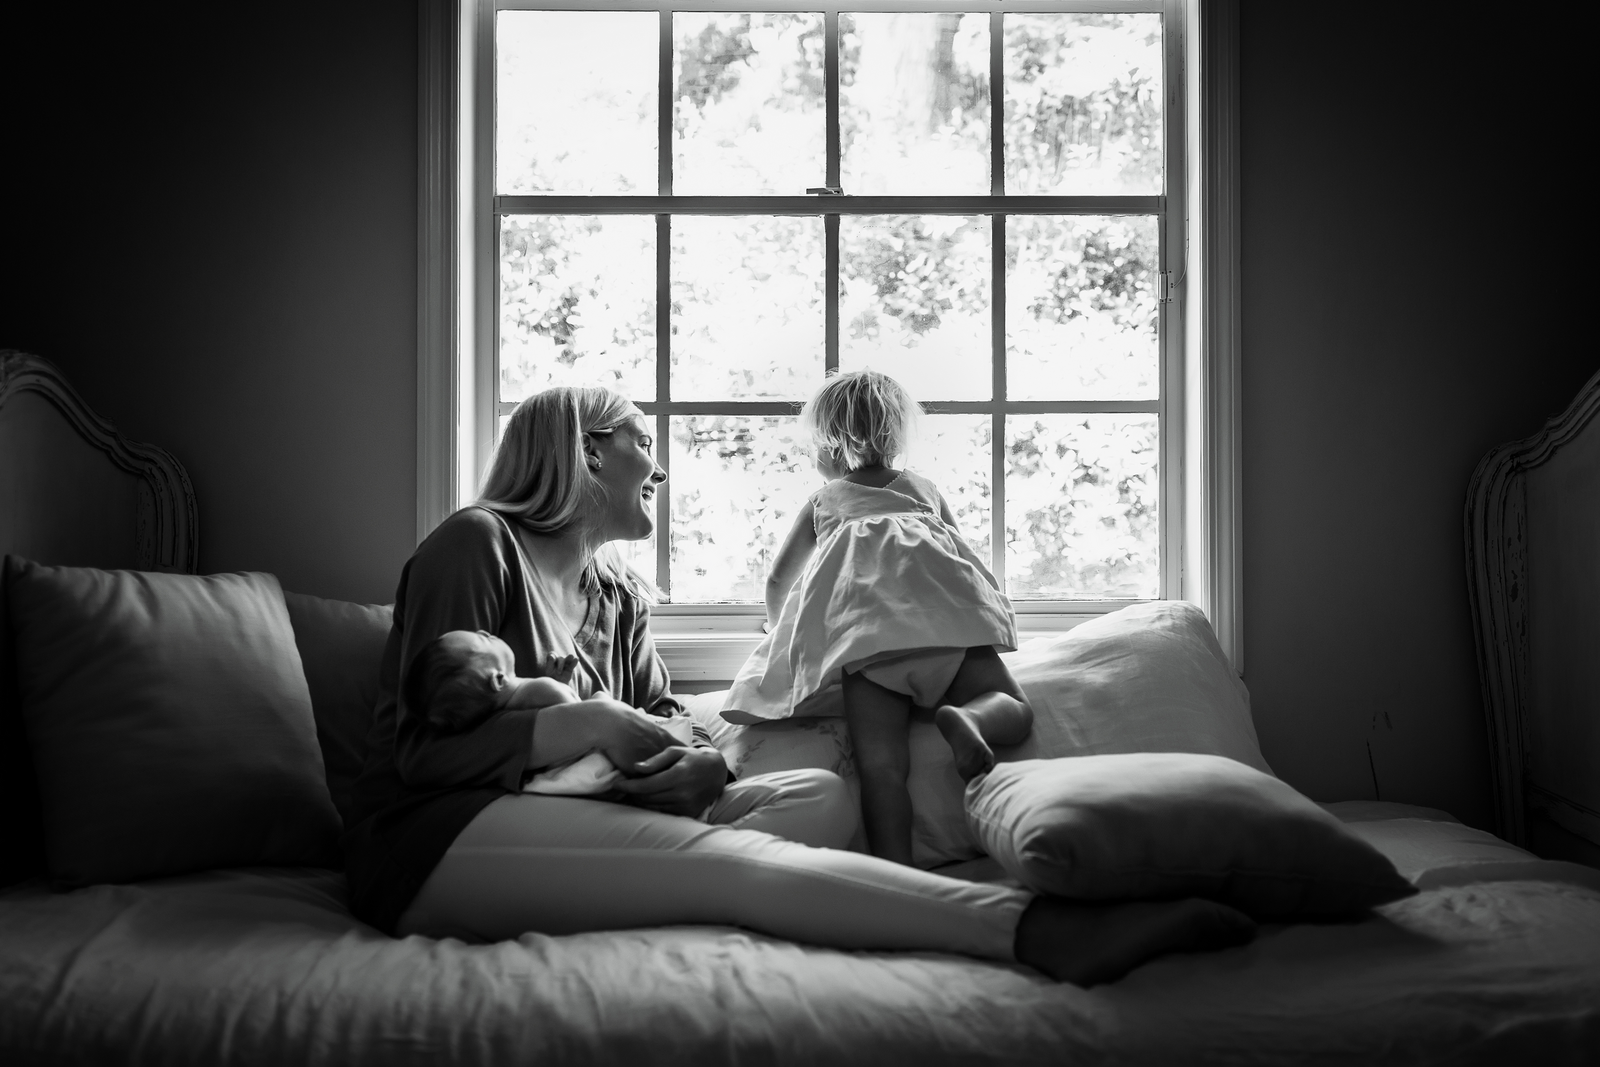 family photographer, columbus, ga, atlanta, documentary, photojournalism, toddler looking out window_9253